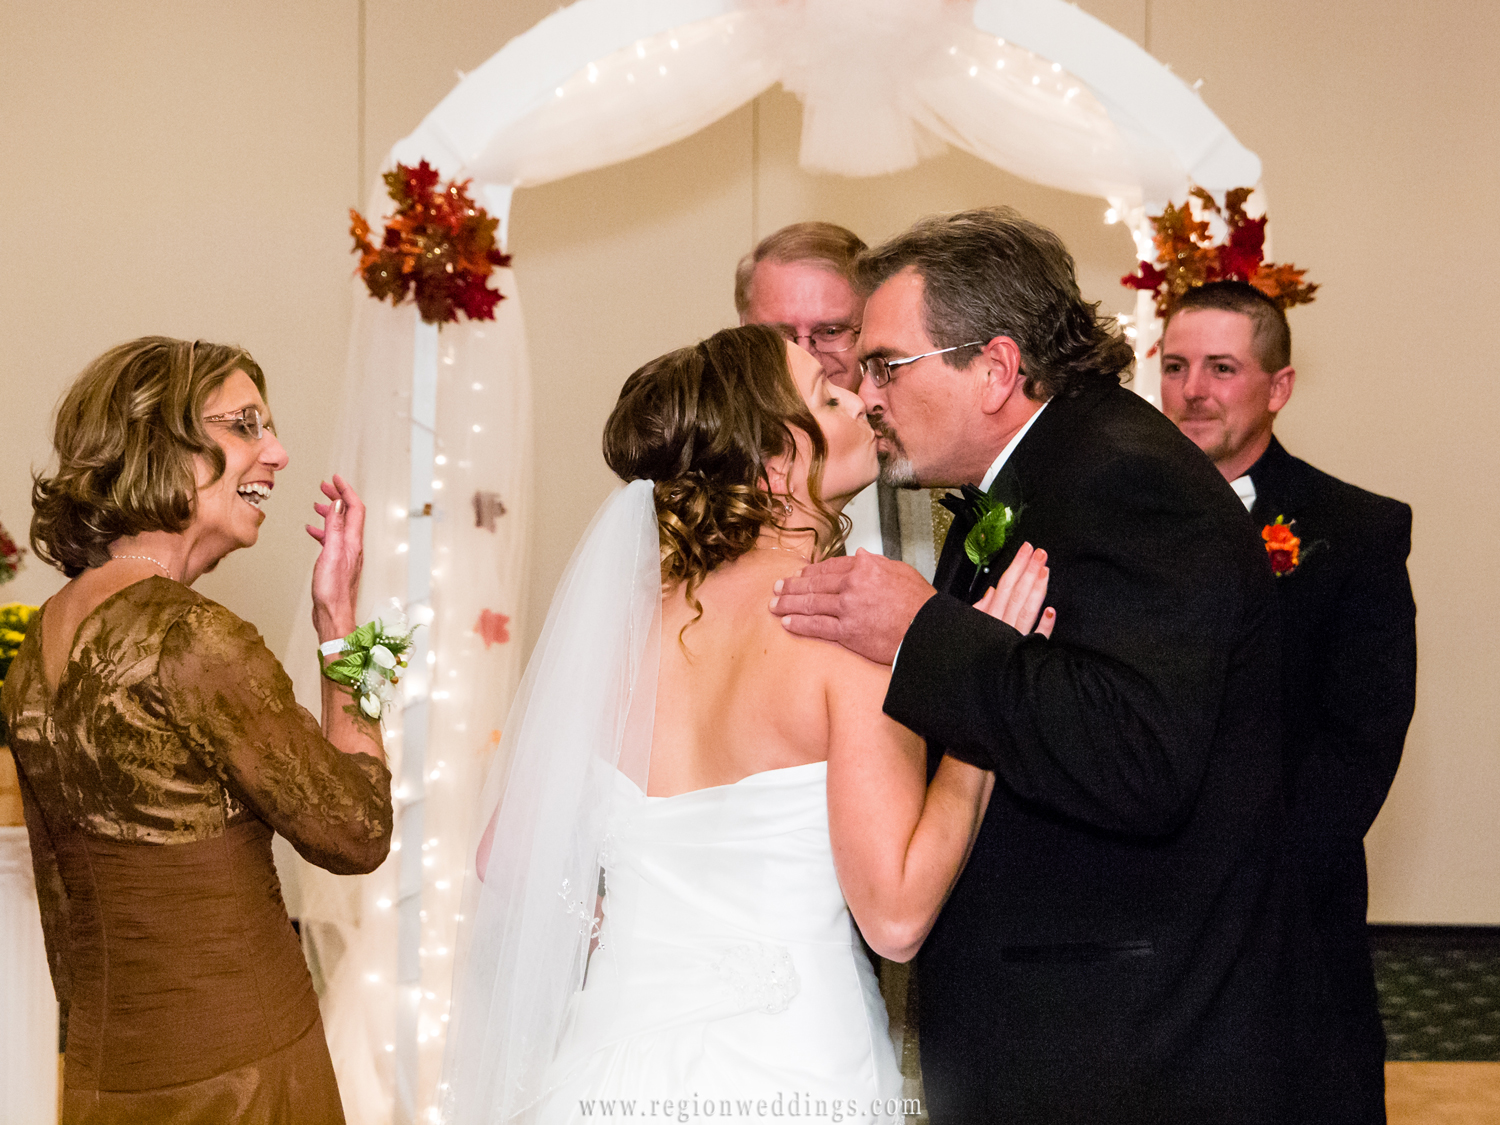 A father gives away his daughter at her fall wedding ceremony.